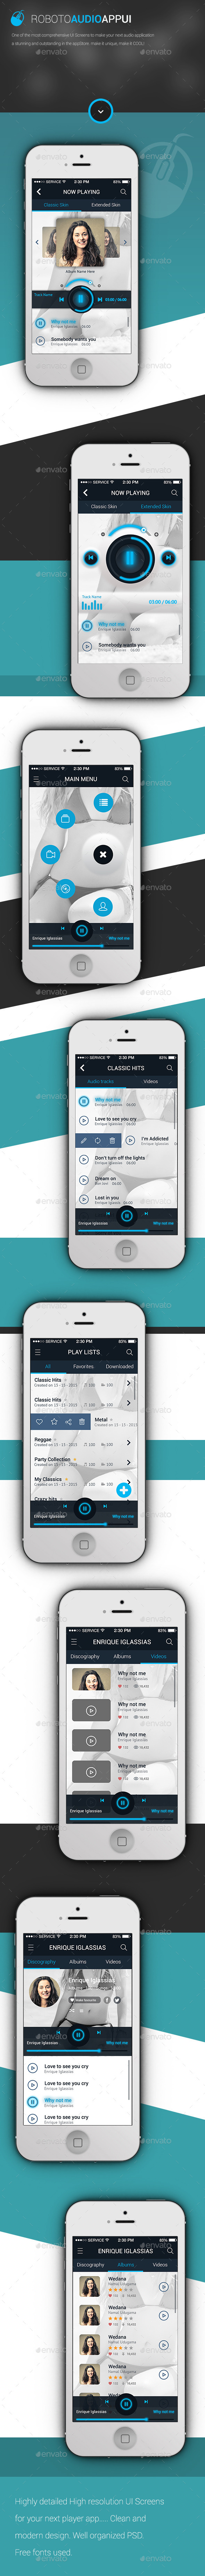 Roboto Phone Player App User Interface Kit - User Interfaces Web Elements